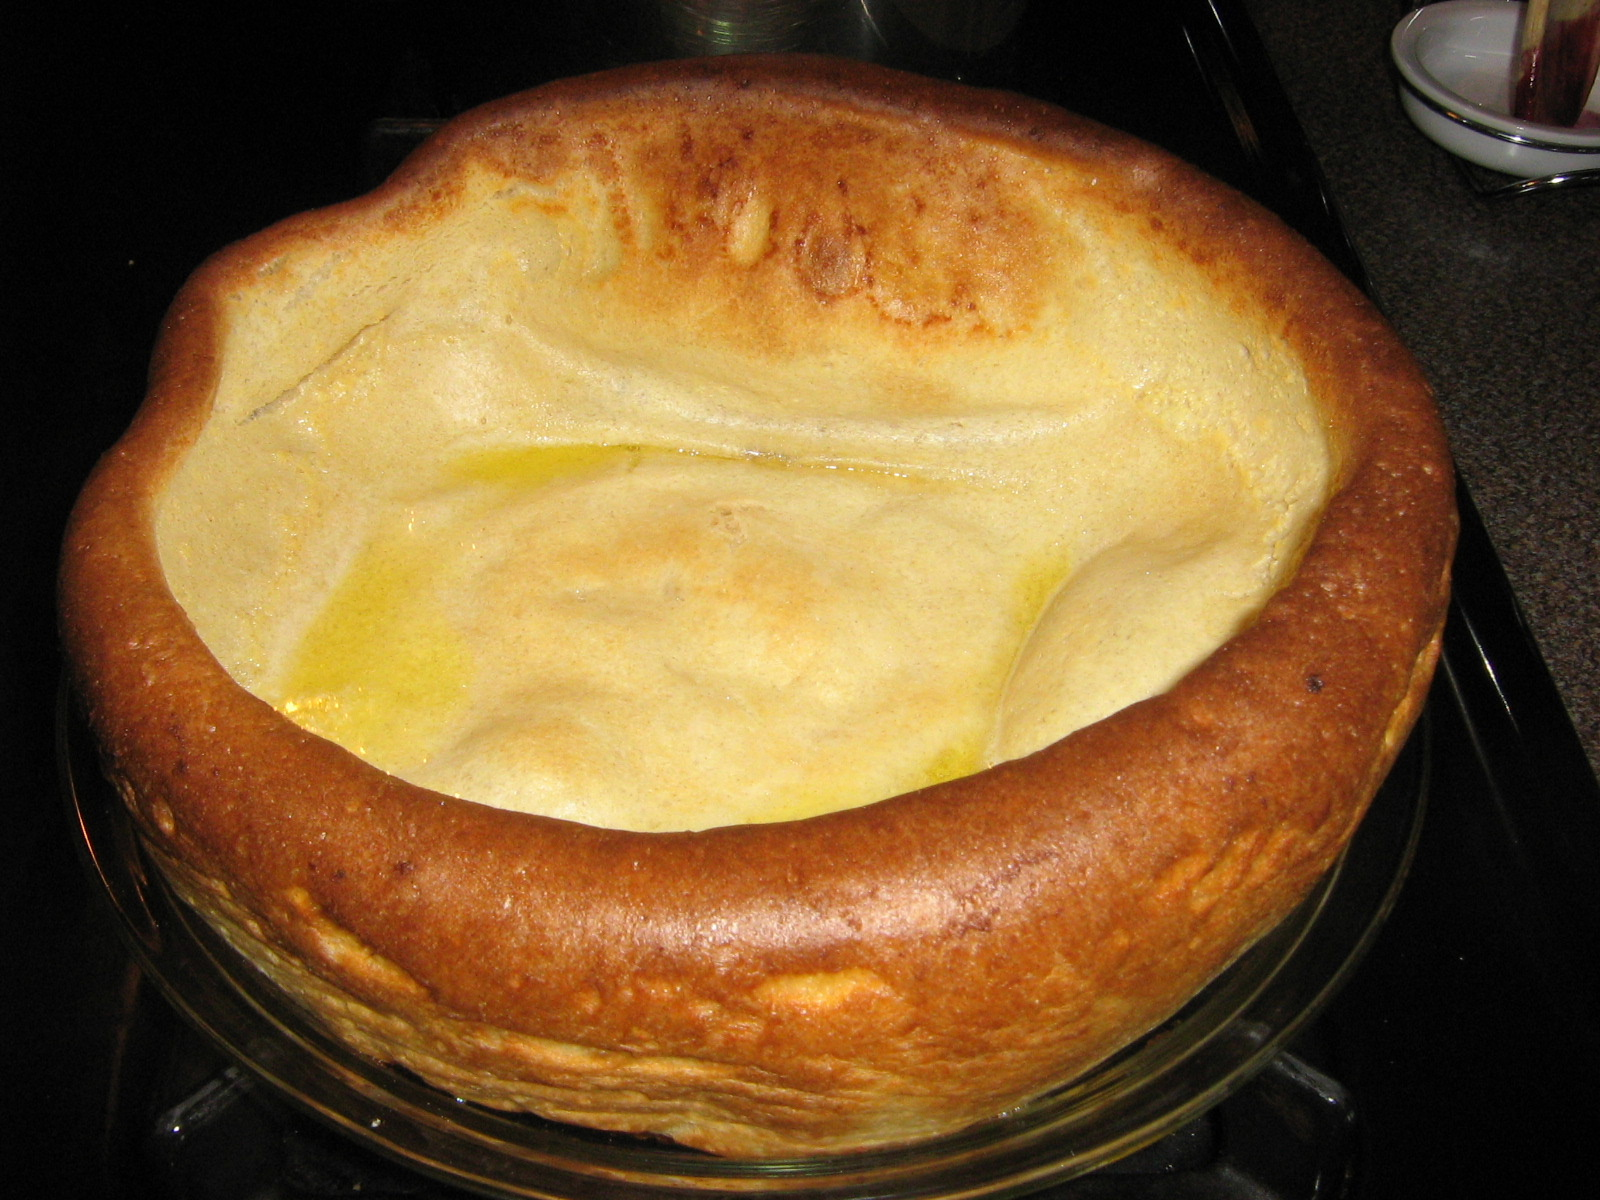 Here is what your pancake will look like out of the oven. (It looks ...